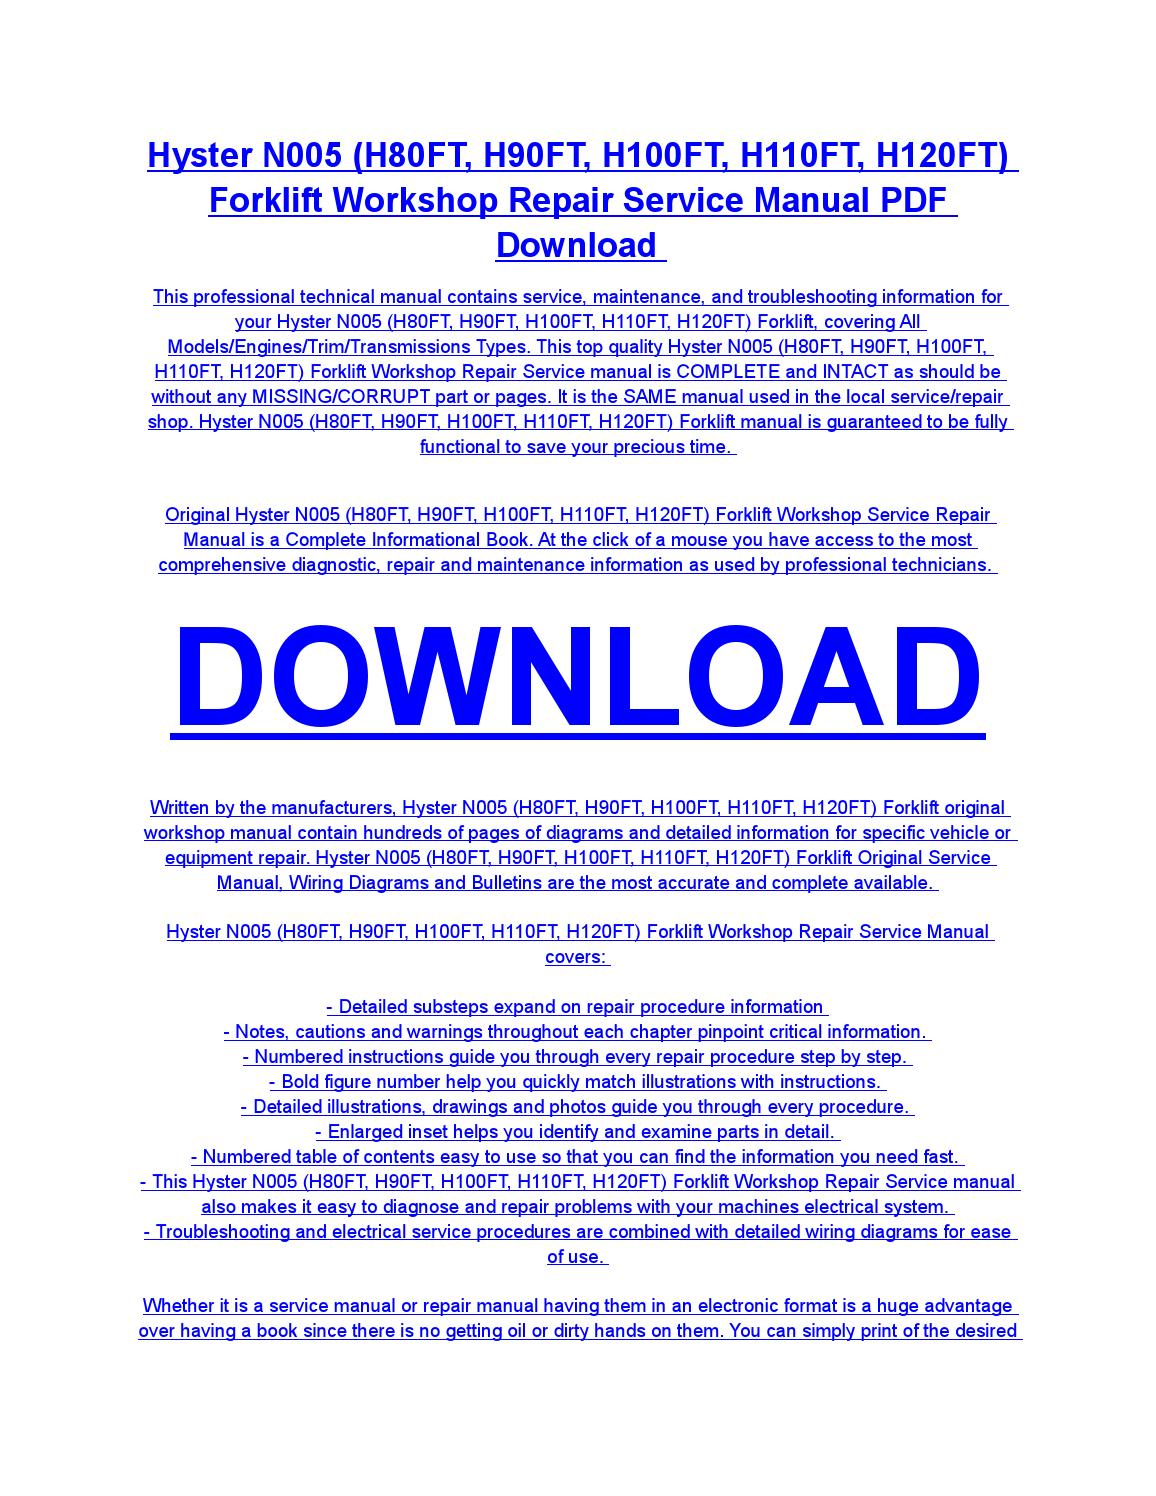 Hyster H100ft Fault Code List Wiring Diagram For 50 Forklift Forklifts Amp Materials Handling Equipment